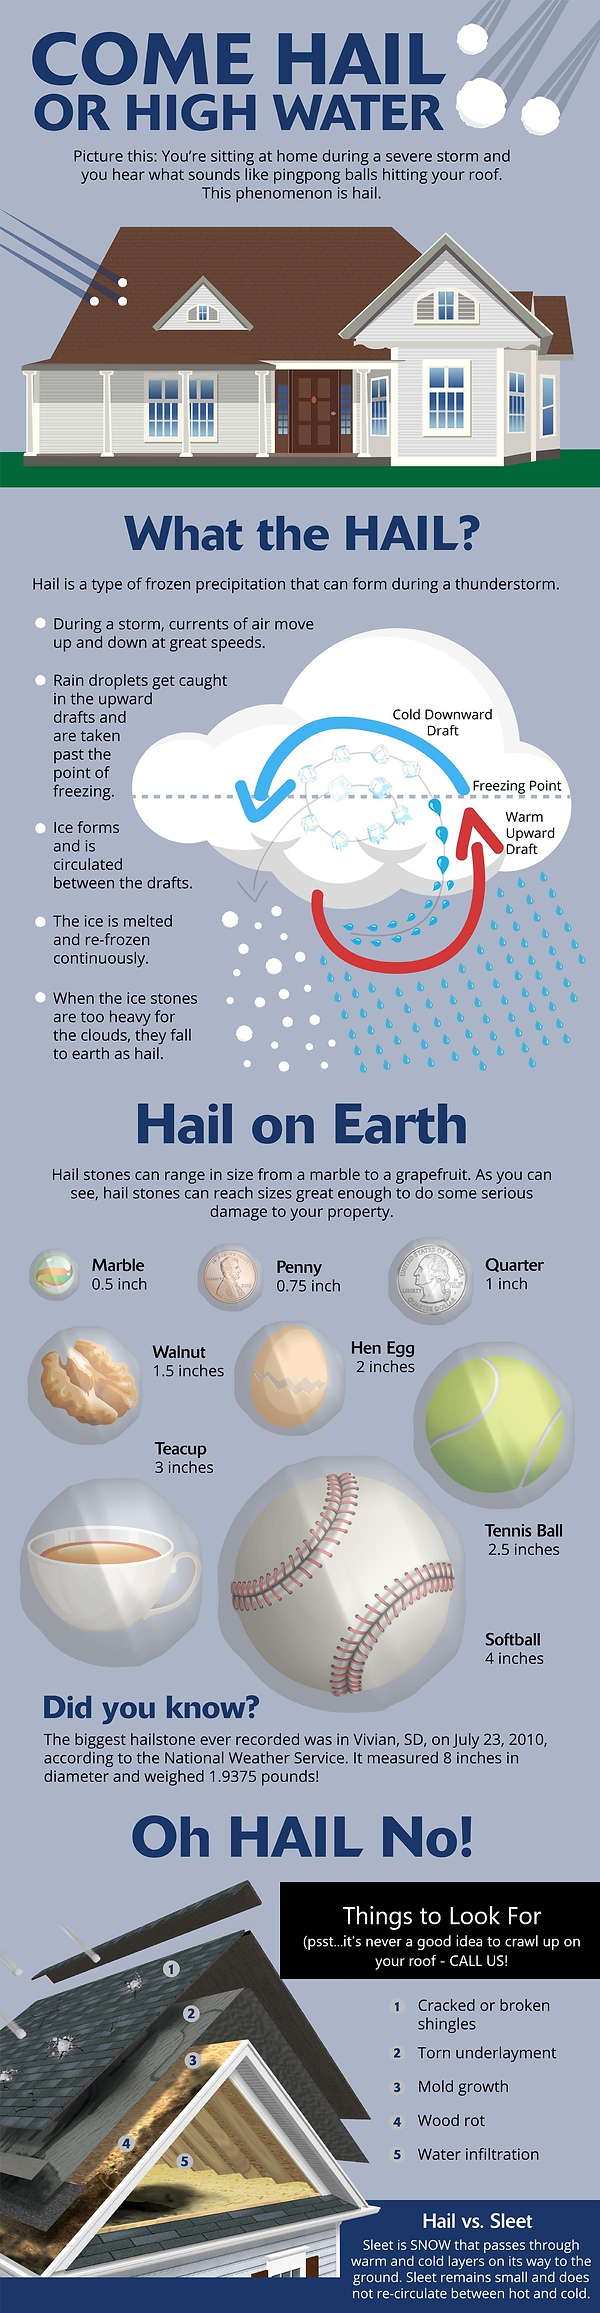 prs construction wind hail infographic.p